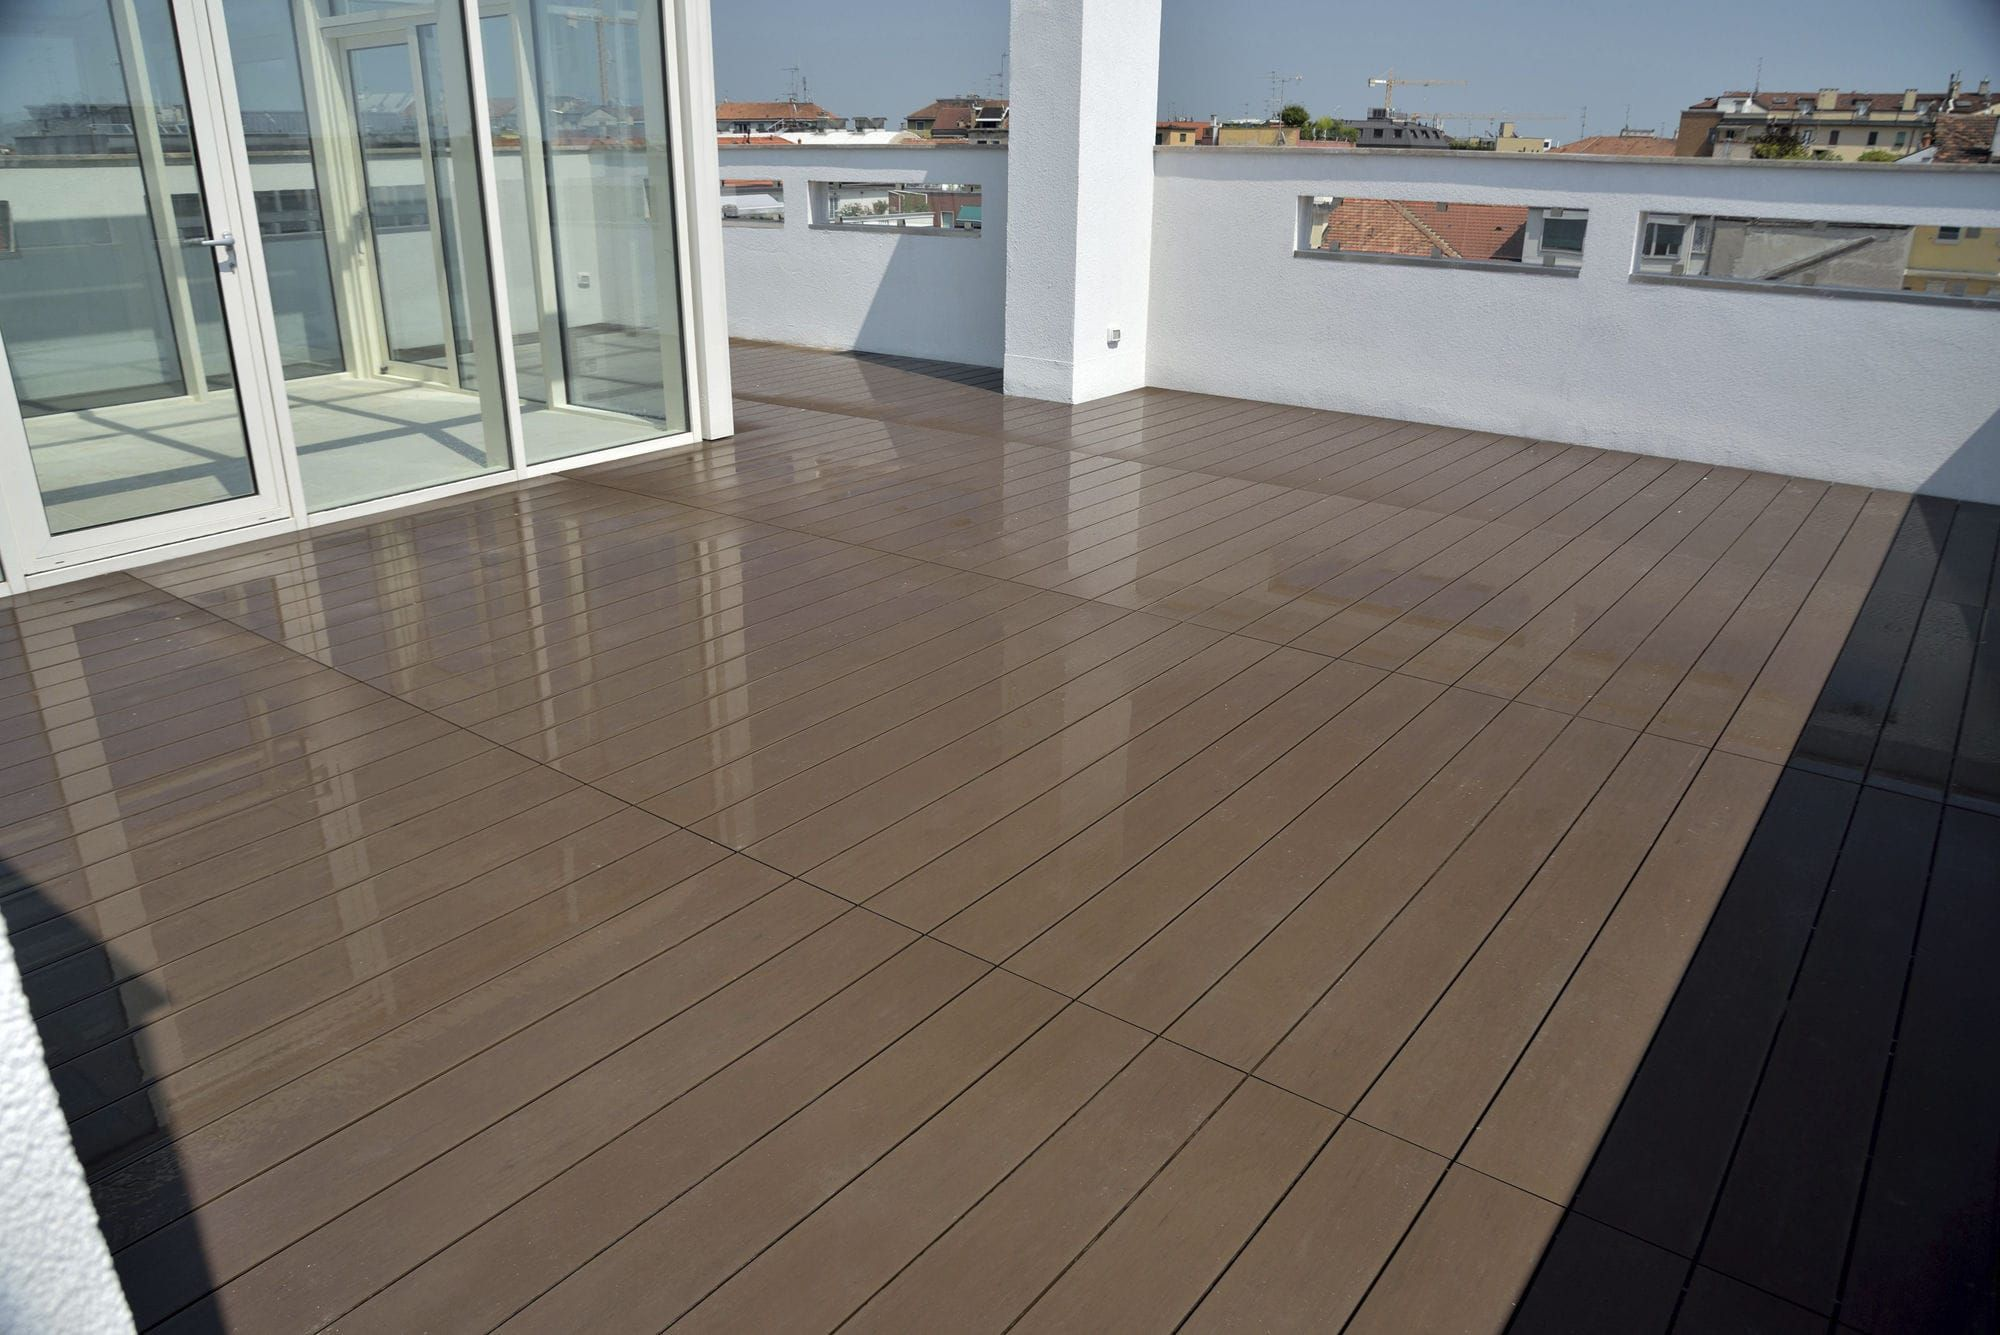 Can Composite Decking Be Put On Over Concrete Diagonal Decking Joist Spacing Best Deck Material For Wet Climate Outdoor Composite Decking Deck Decking Material